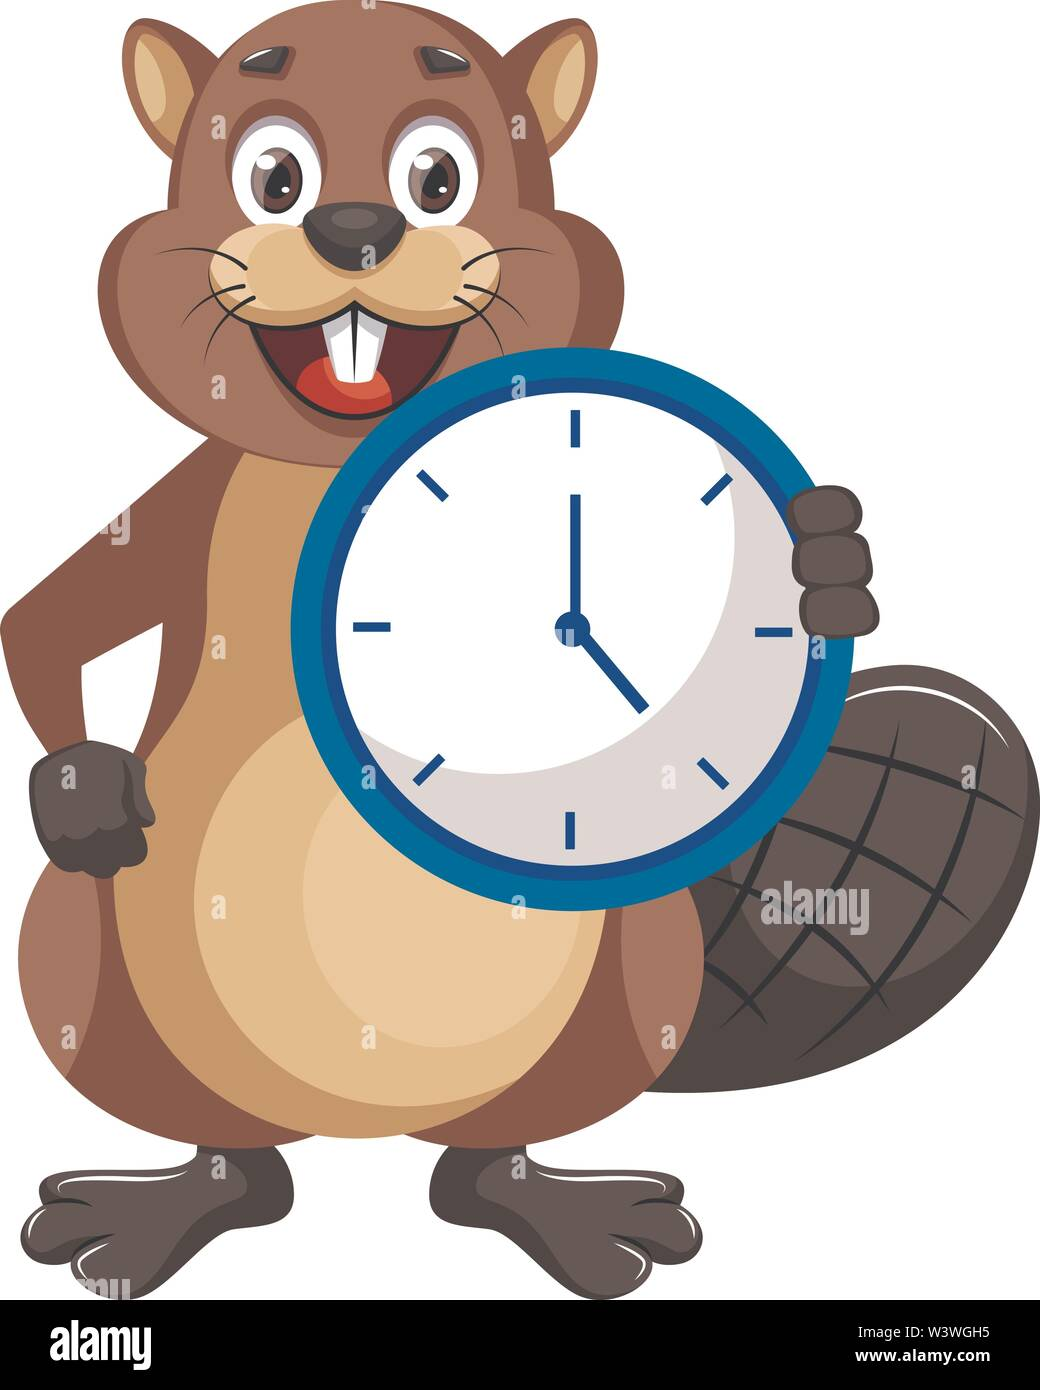 Beaver with clock, illustration, vector on white background. - Stock Image